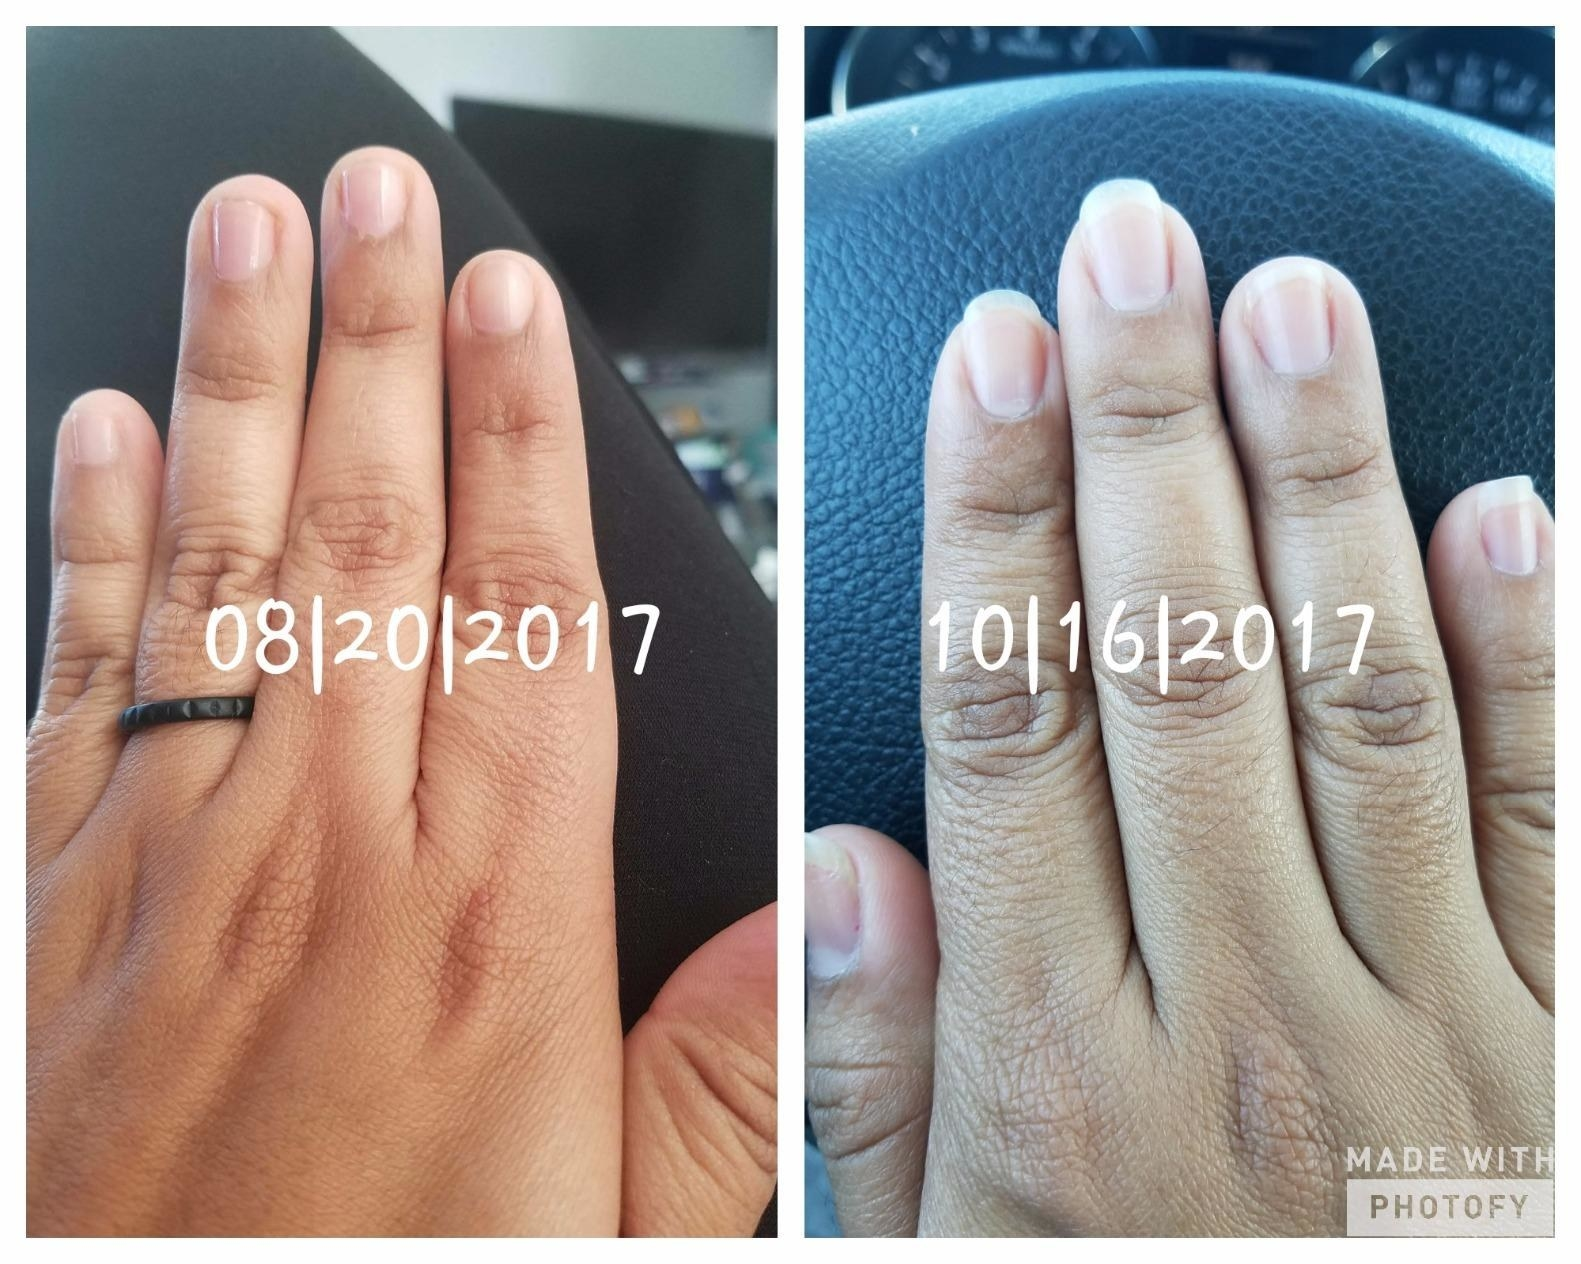 left: reviewer's short nails on august 20, right: reviewer's somewhat long nails on october 16